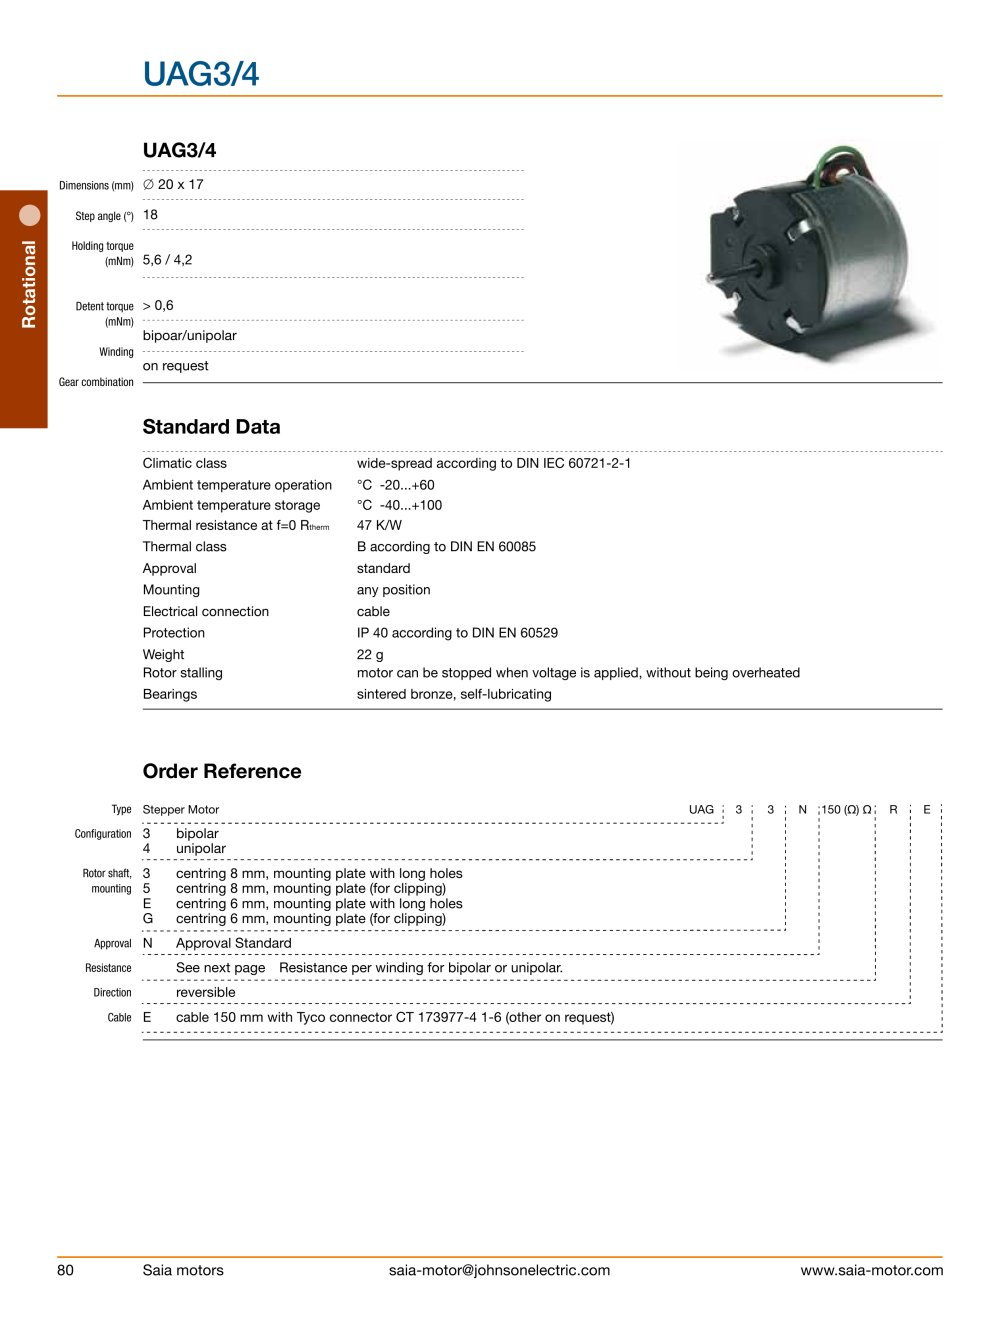 Standard Rotary Stepper Motors Johnson Electric Pdf Catalogue American Phase Wiring Diagram 1 38 Pages